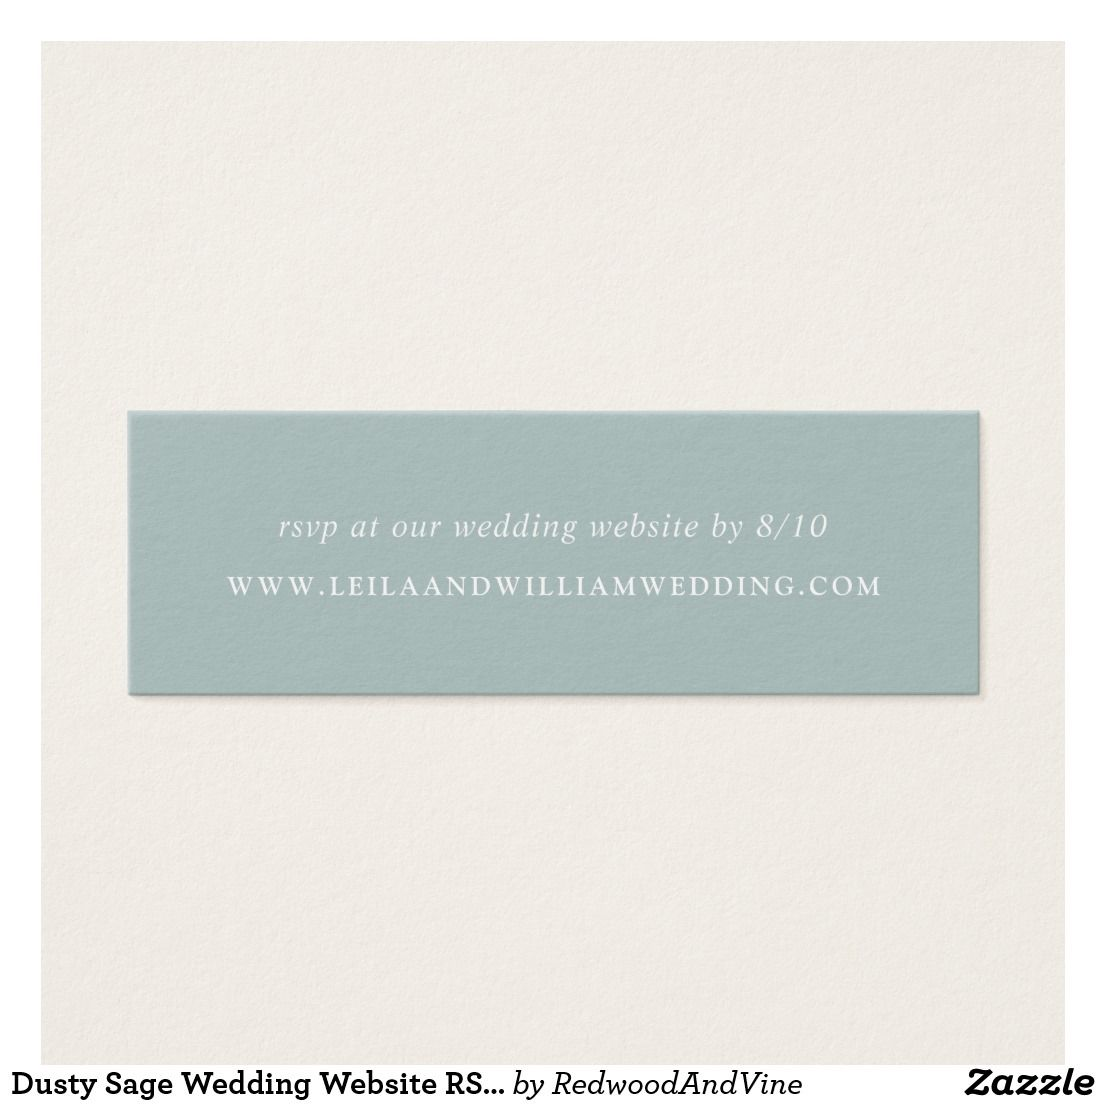 Dusty Sage Wedding Website Rsvp Cards Save Paper And Postage By Inviting Guests To At Your Feature White Lettering On A